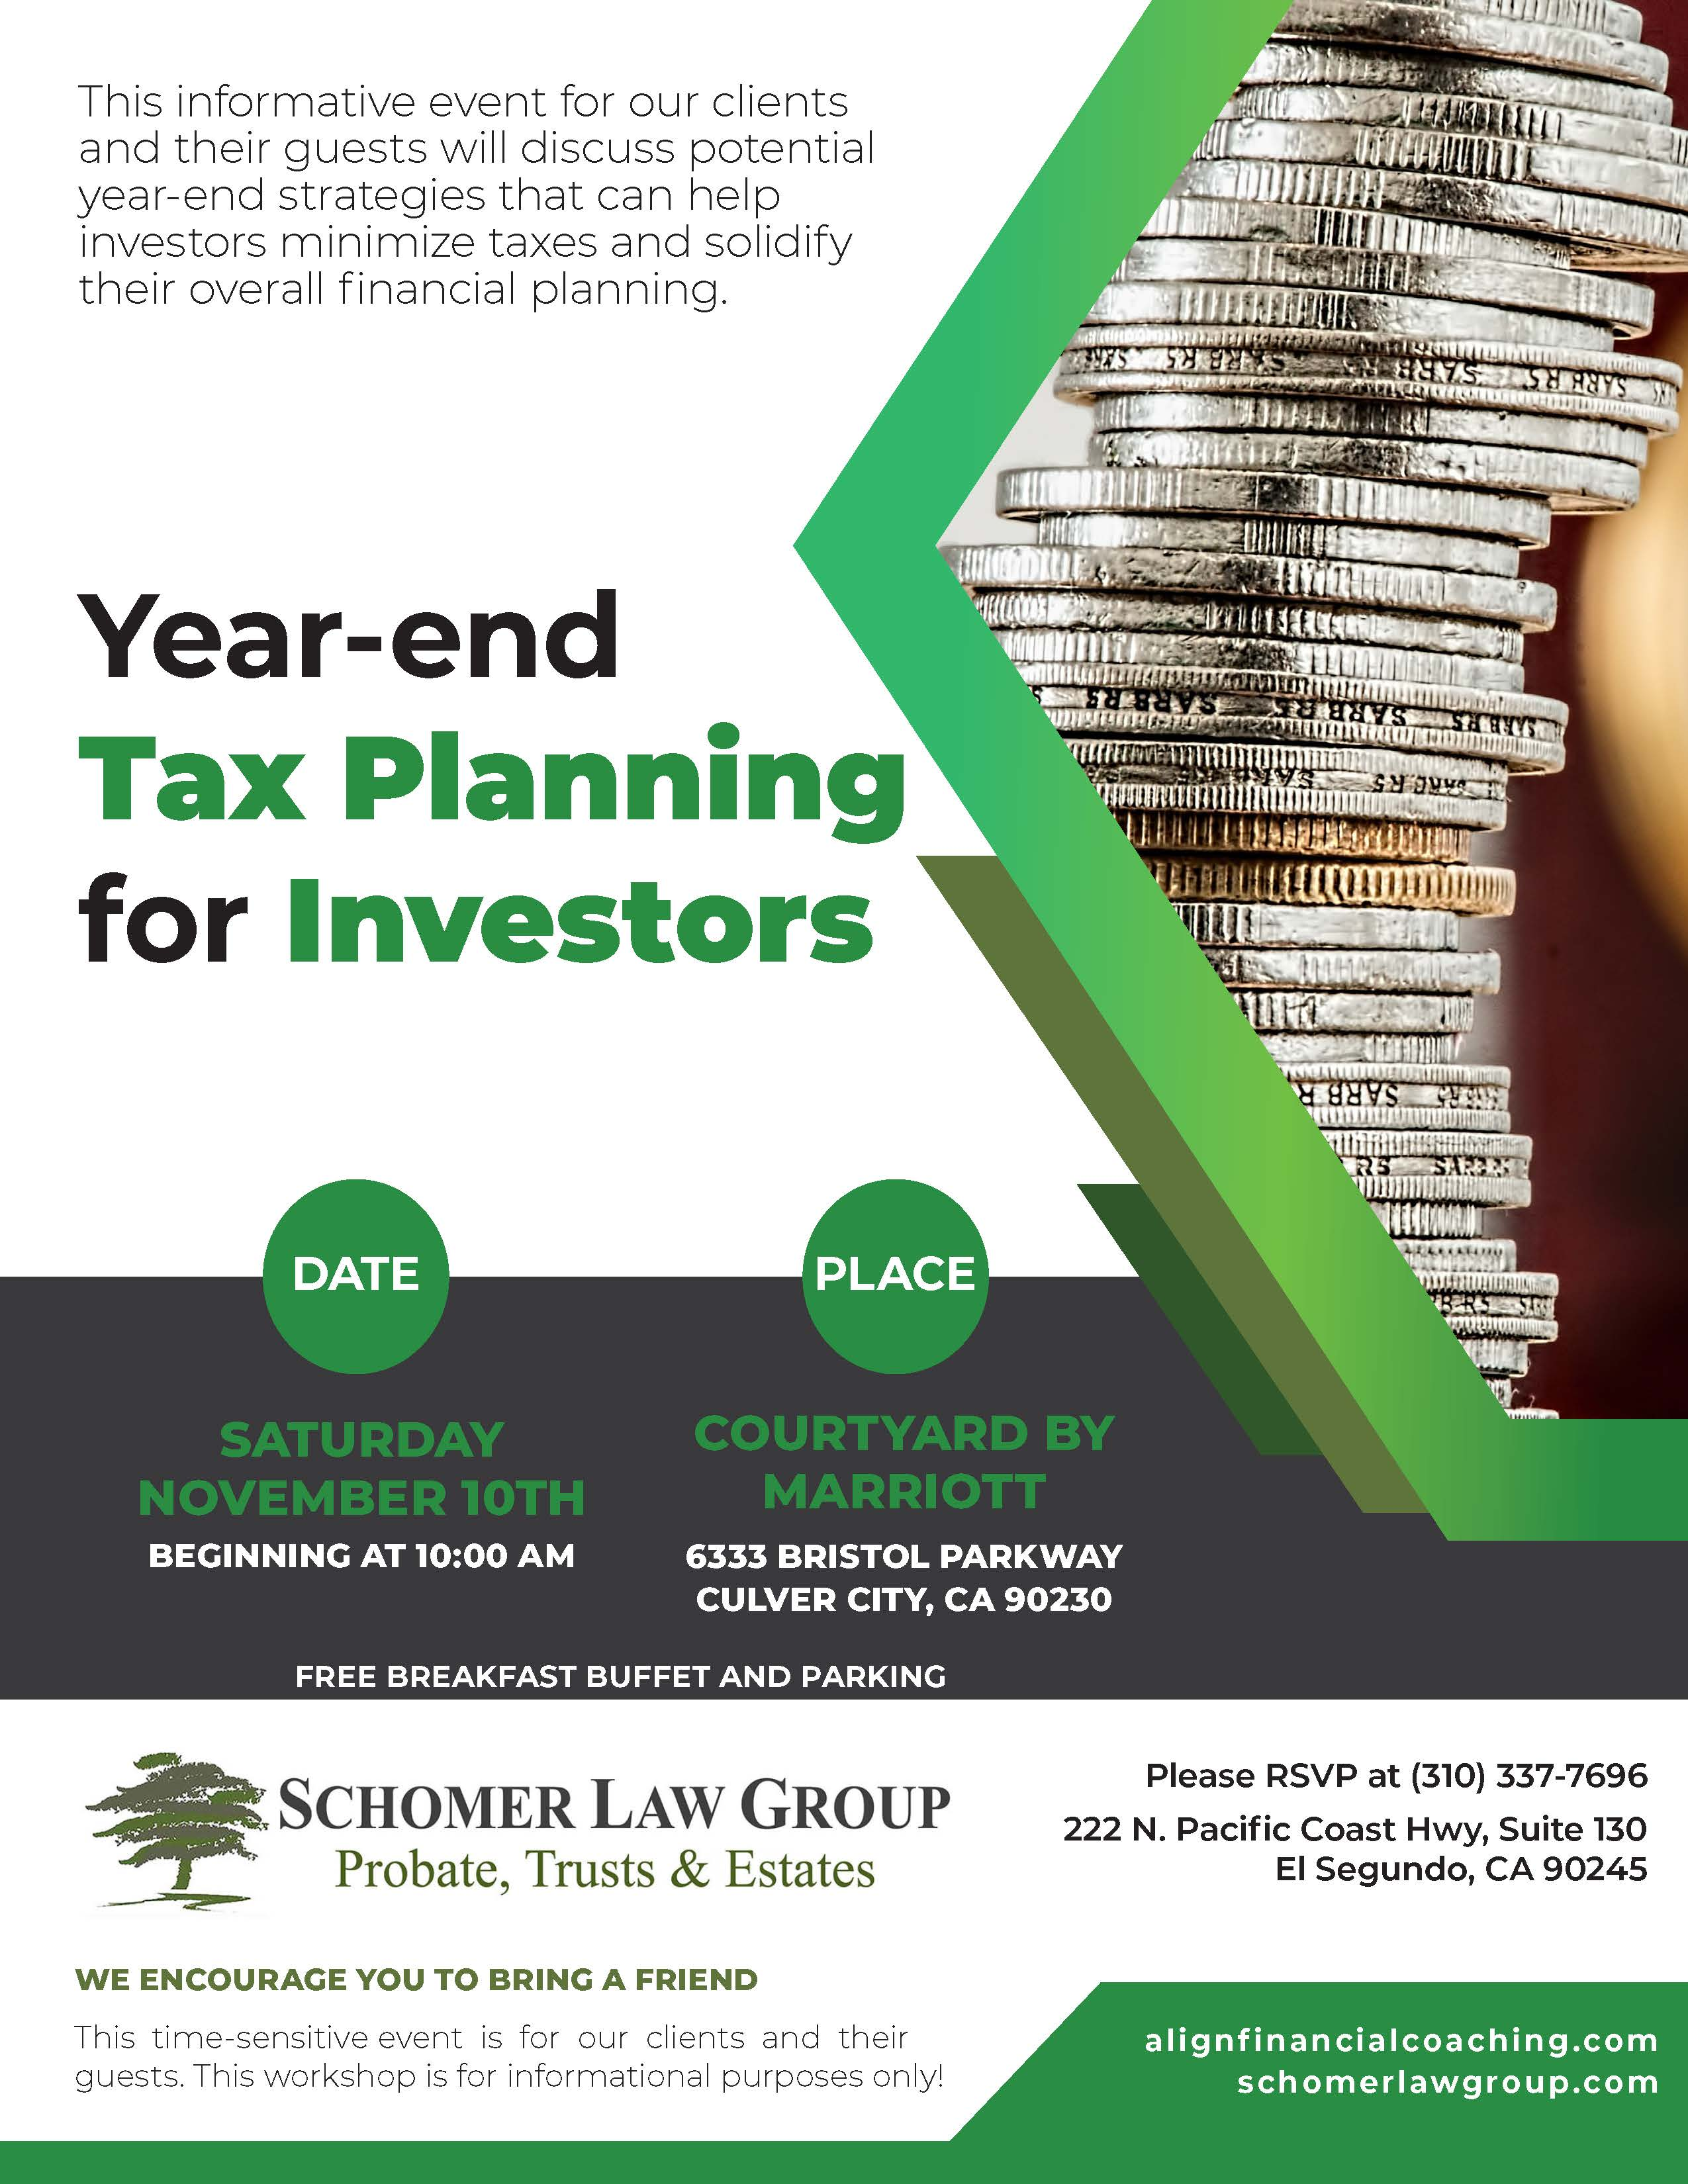 Year-End Tax Planning for Investors